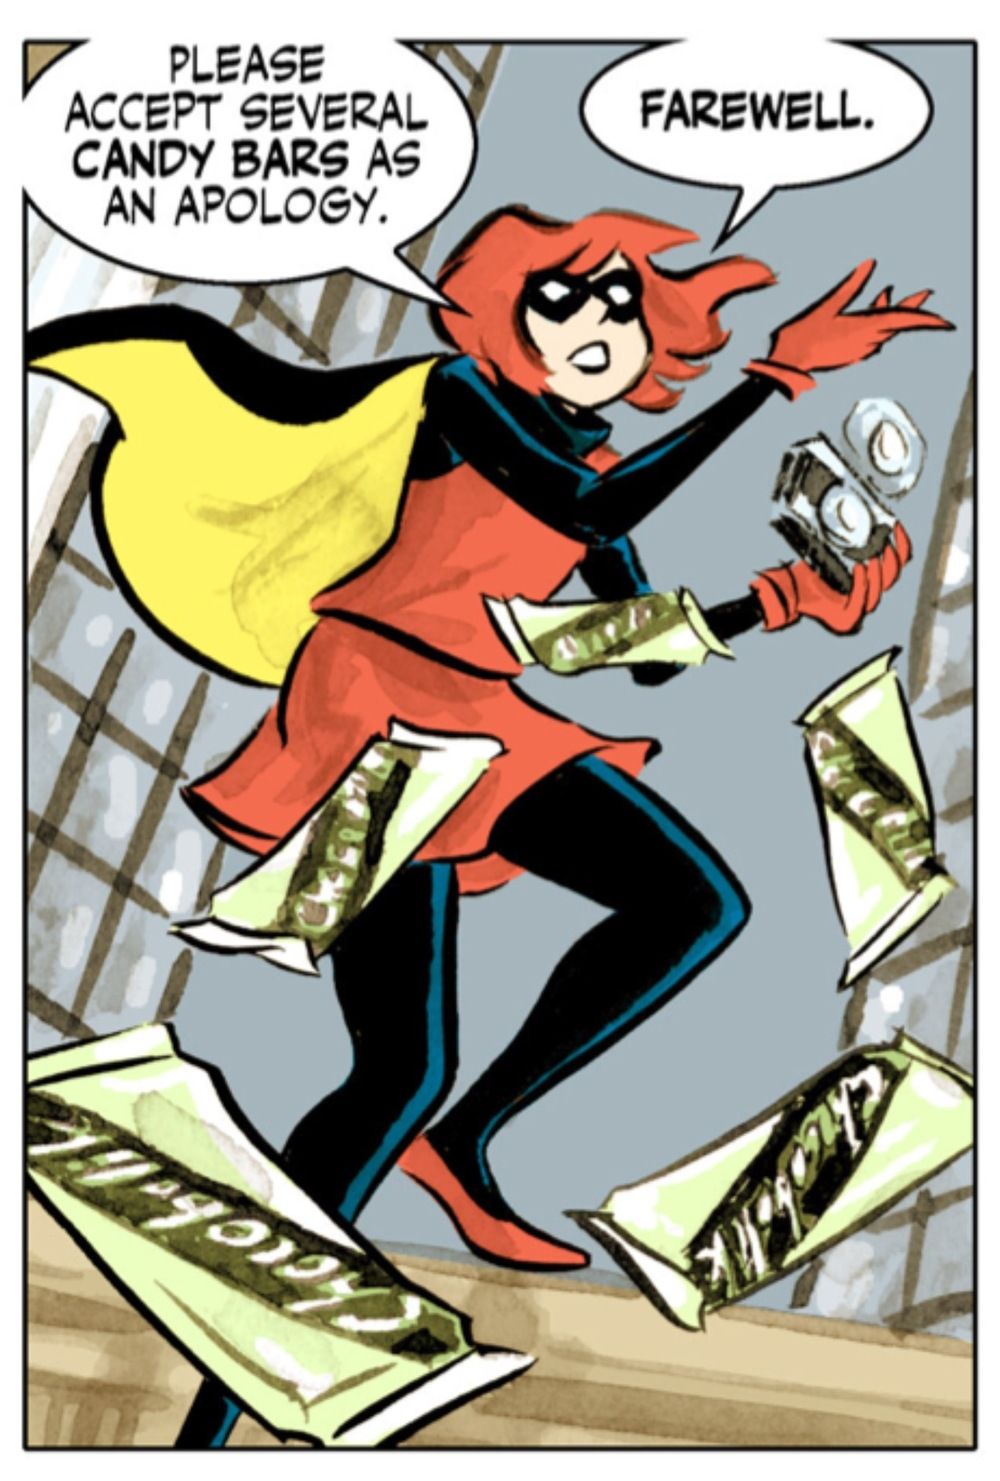 Bandette aime son chocolat.(C) 2016 Paul Tobin and Colleen Coover.